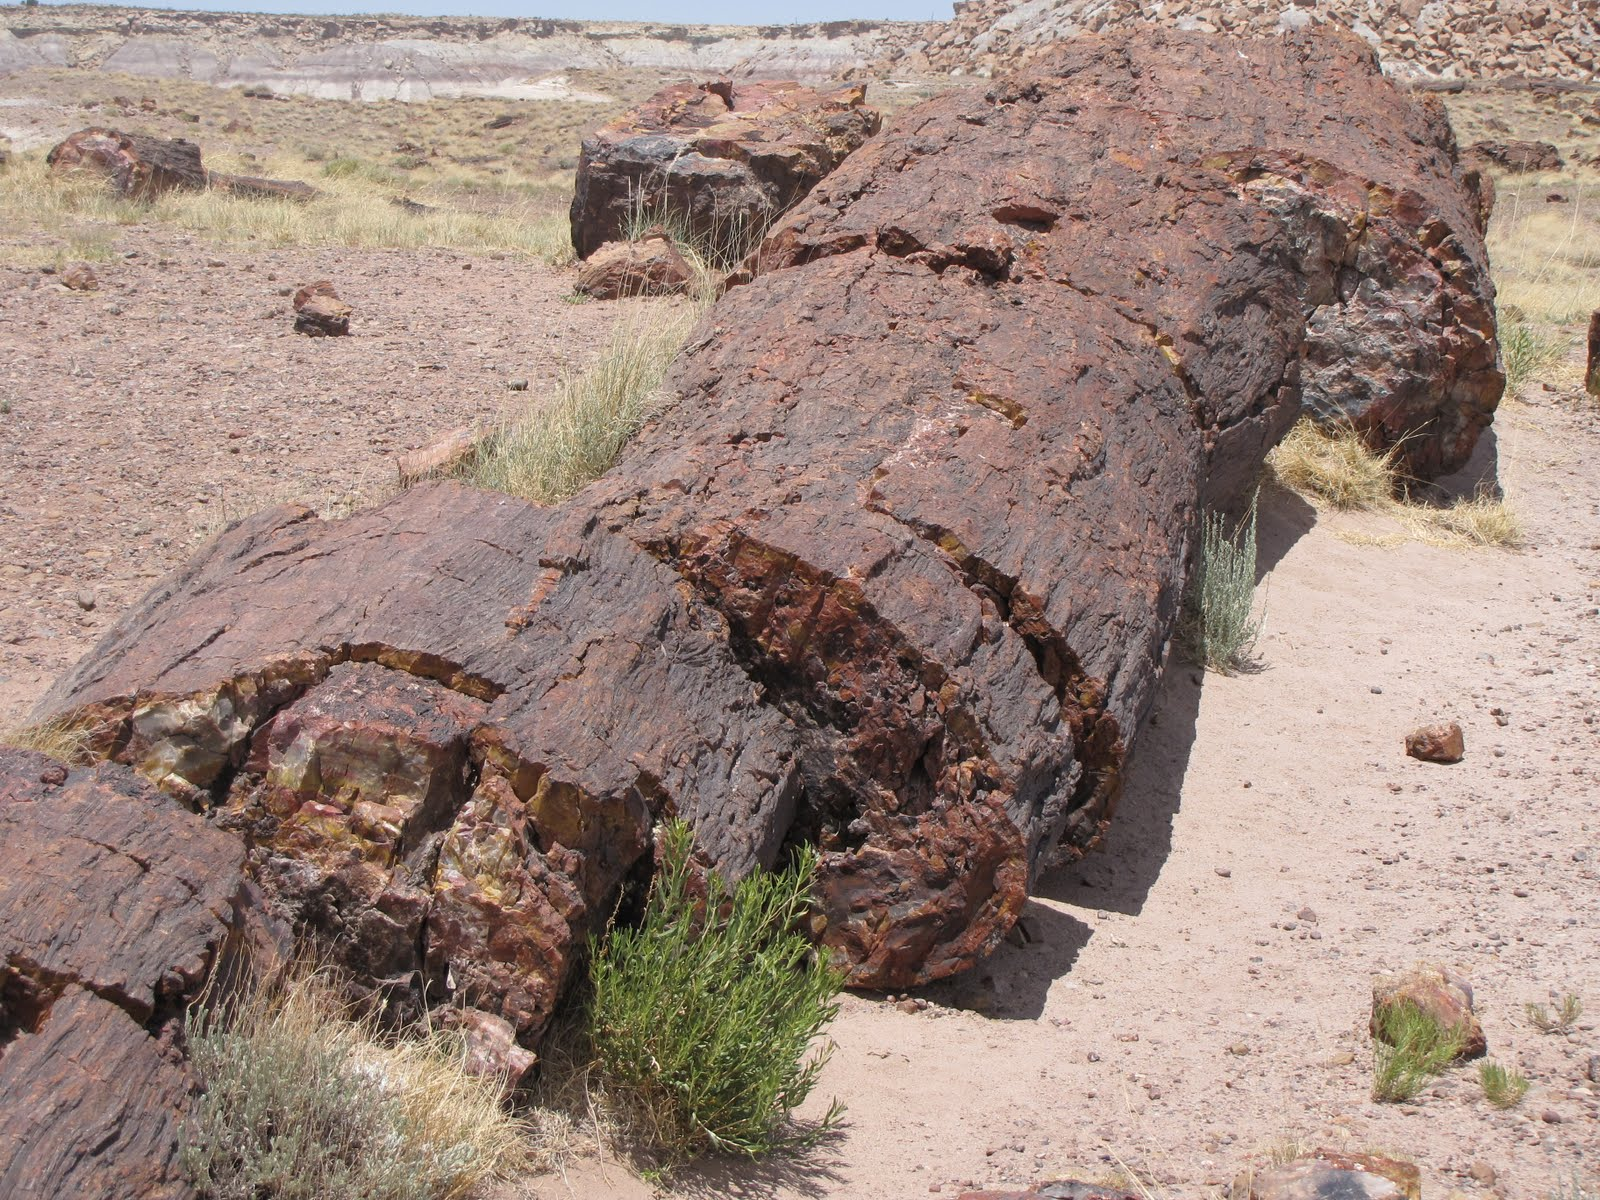 petrified forest natl pk jewish personals On the road: saguaro national park, petrified forest national park bring arizona desert to life.